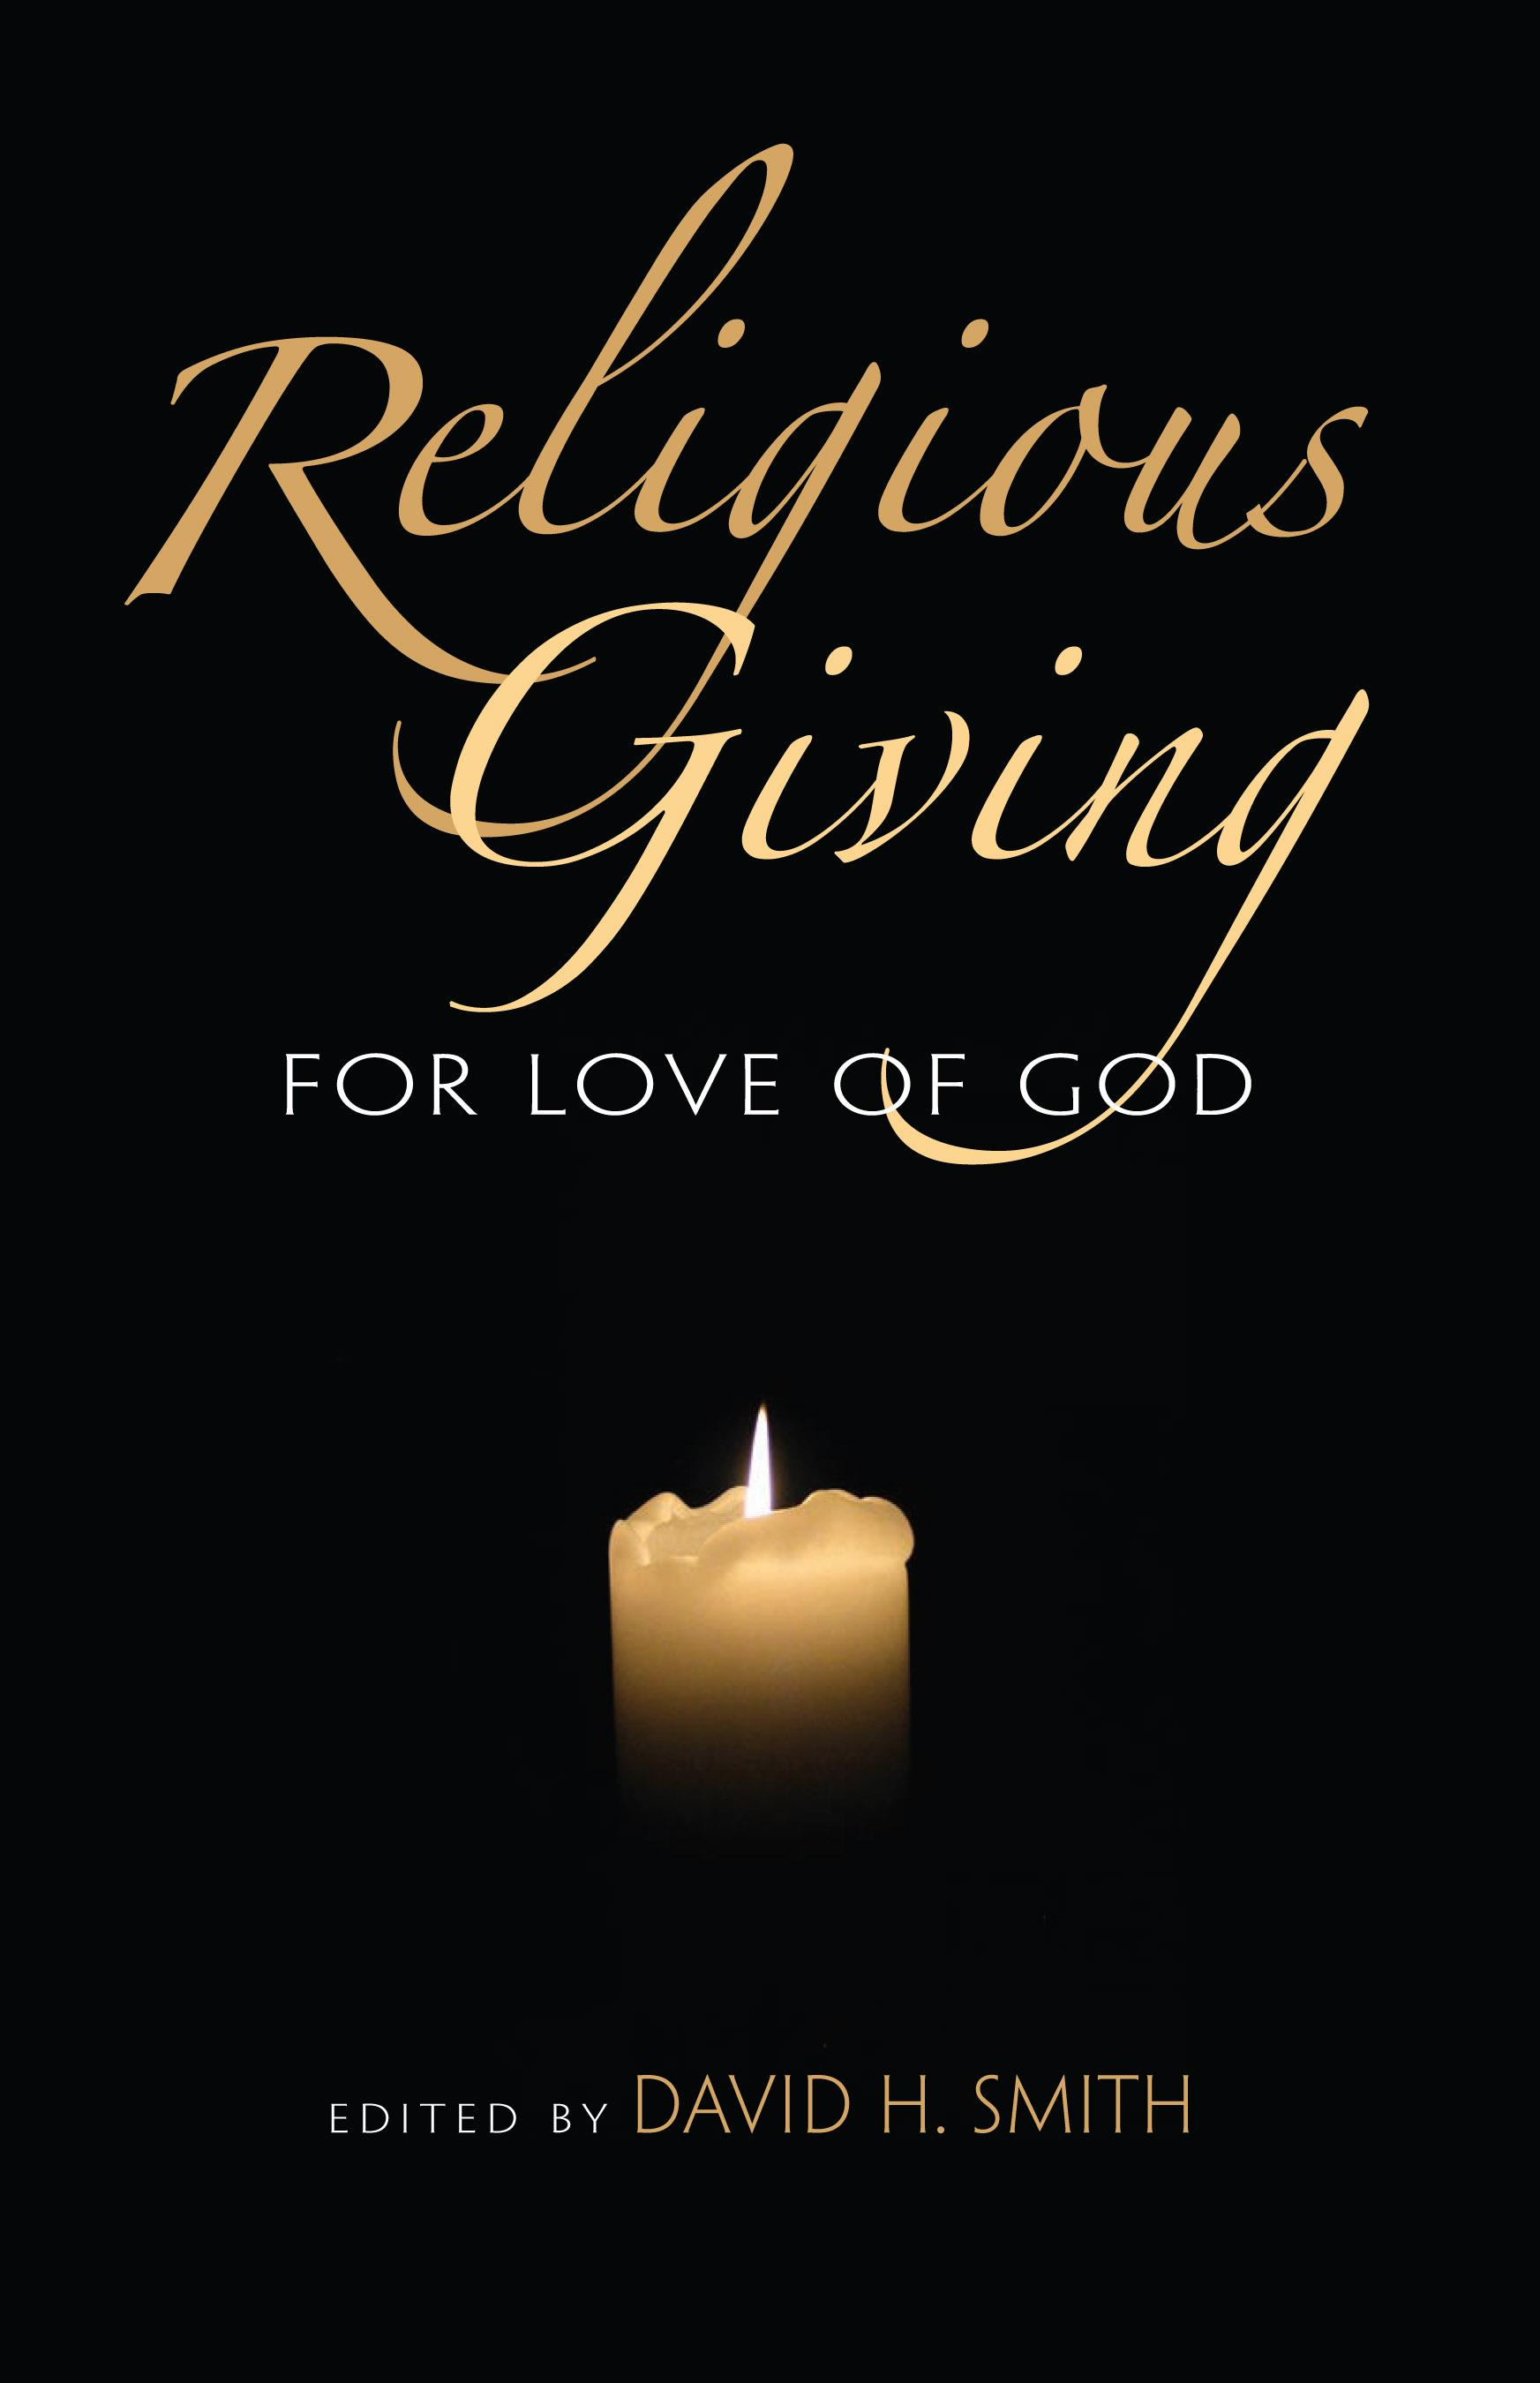 Religious Giving: For the Love of God